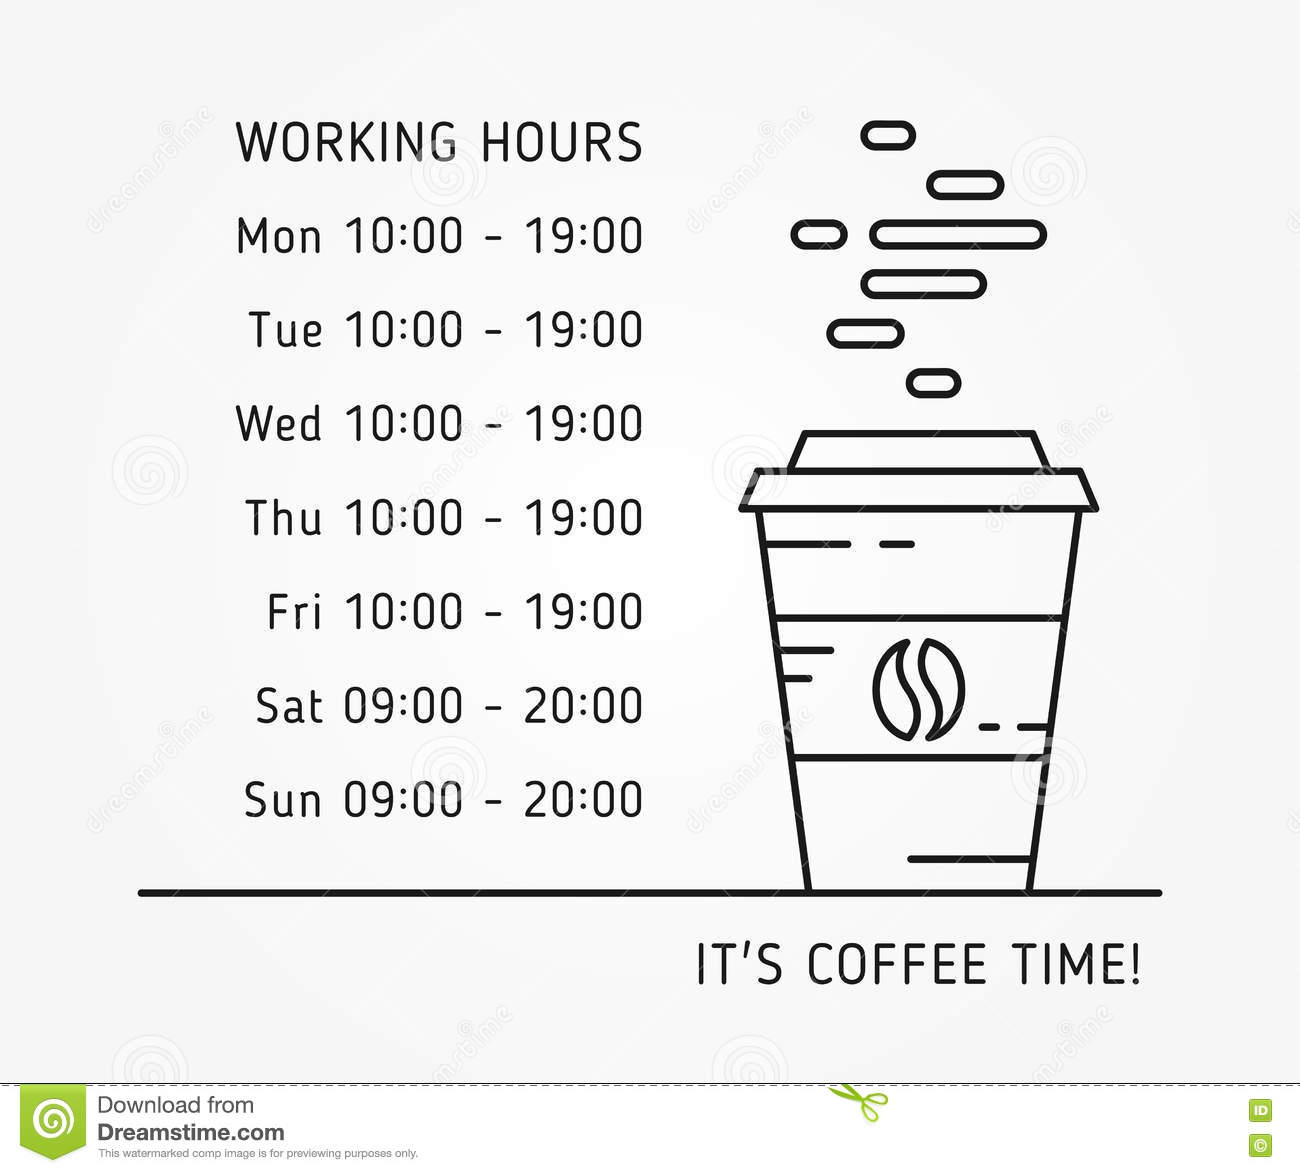 Coffee Time Working Hours Linear Vector Illustration Stock Vector ...